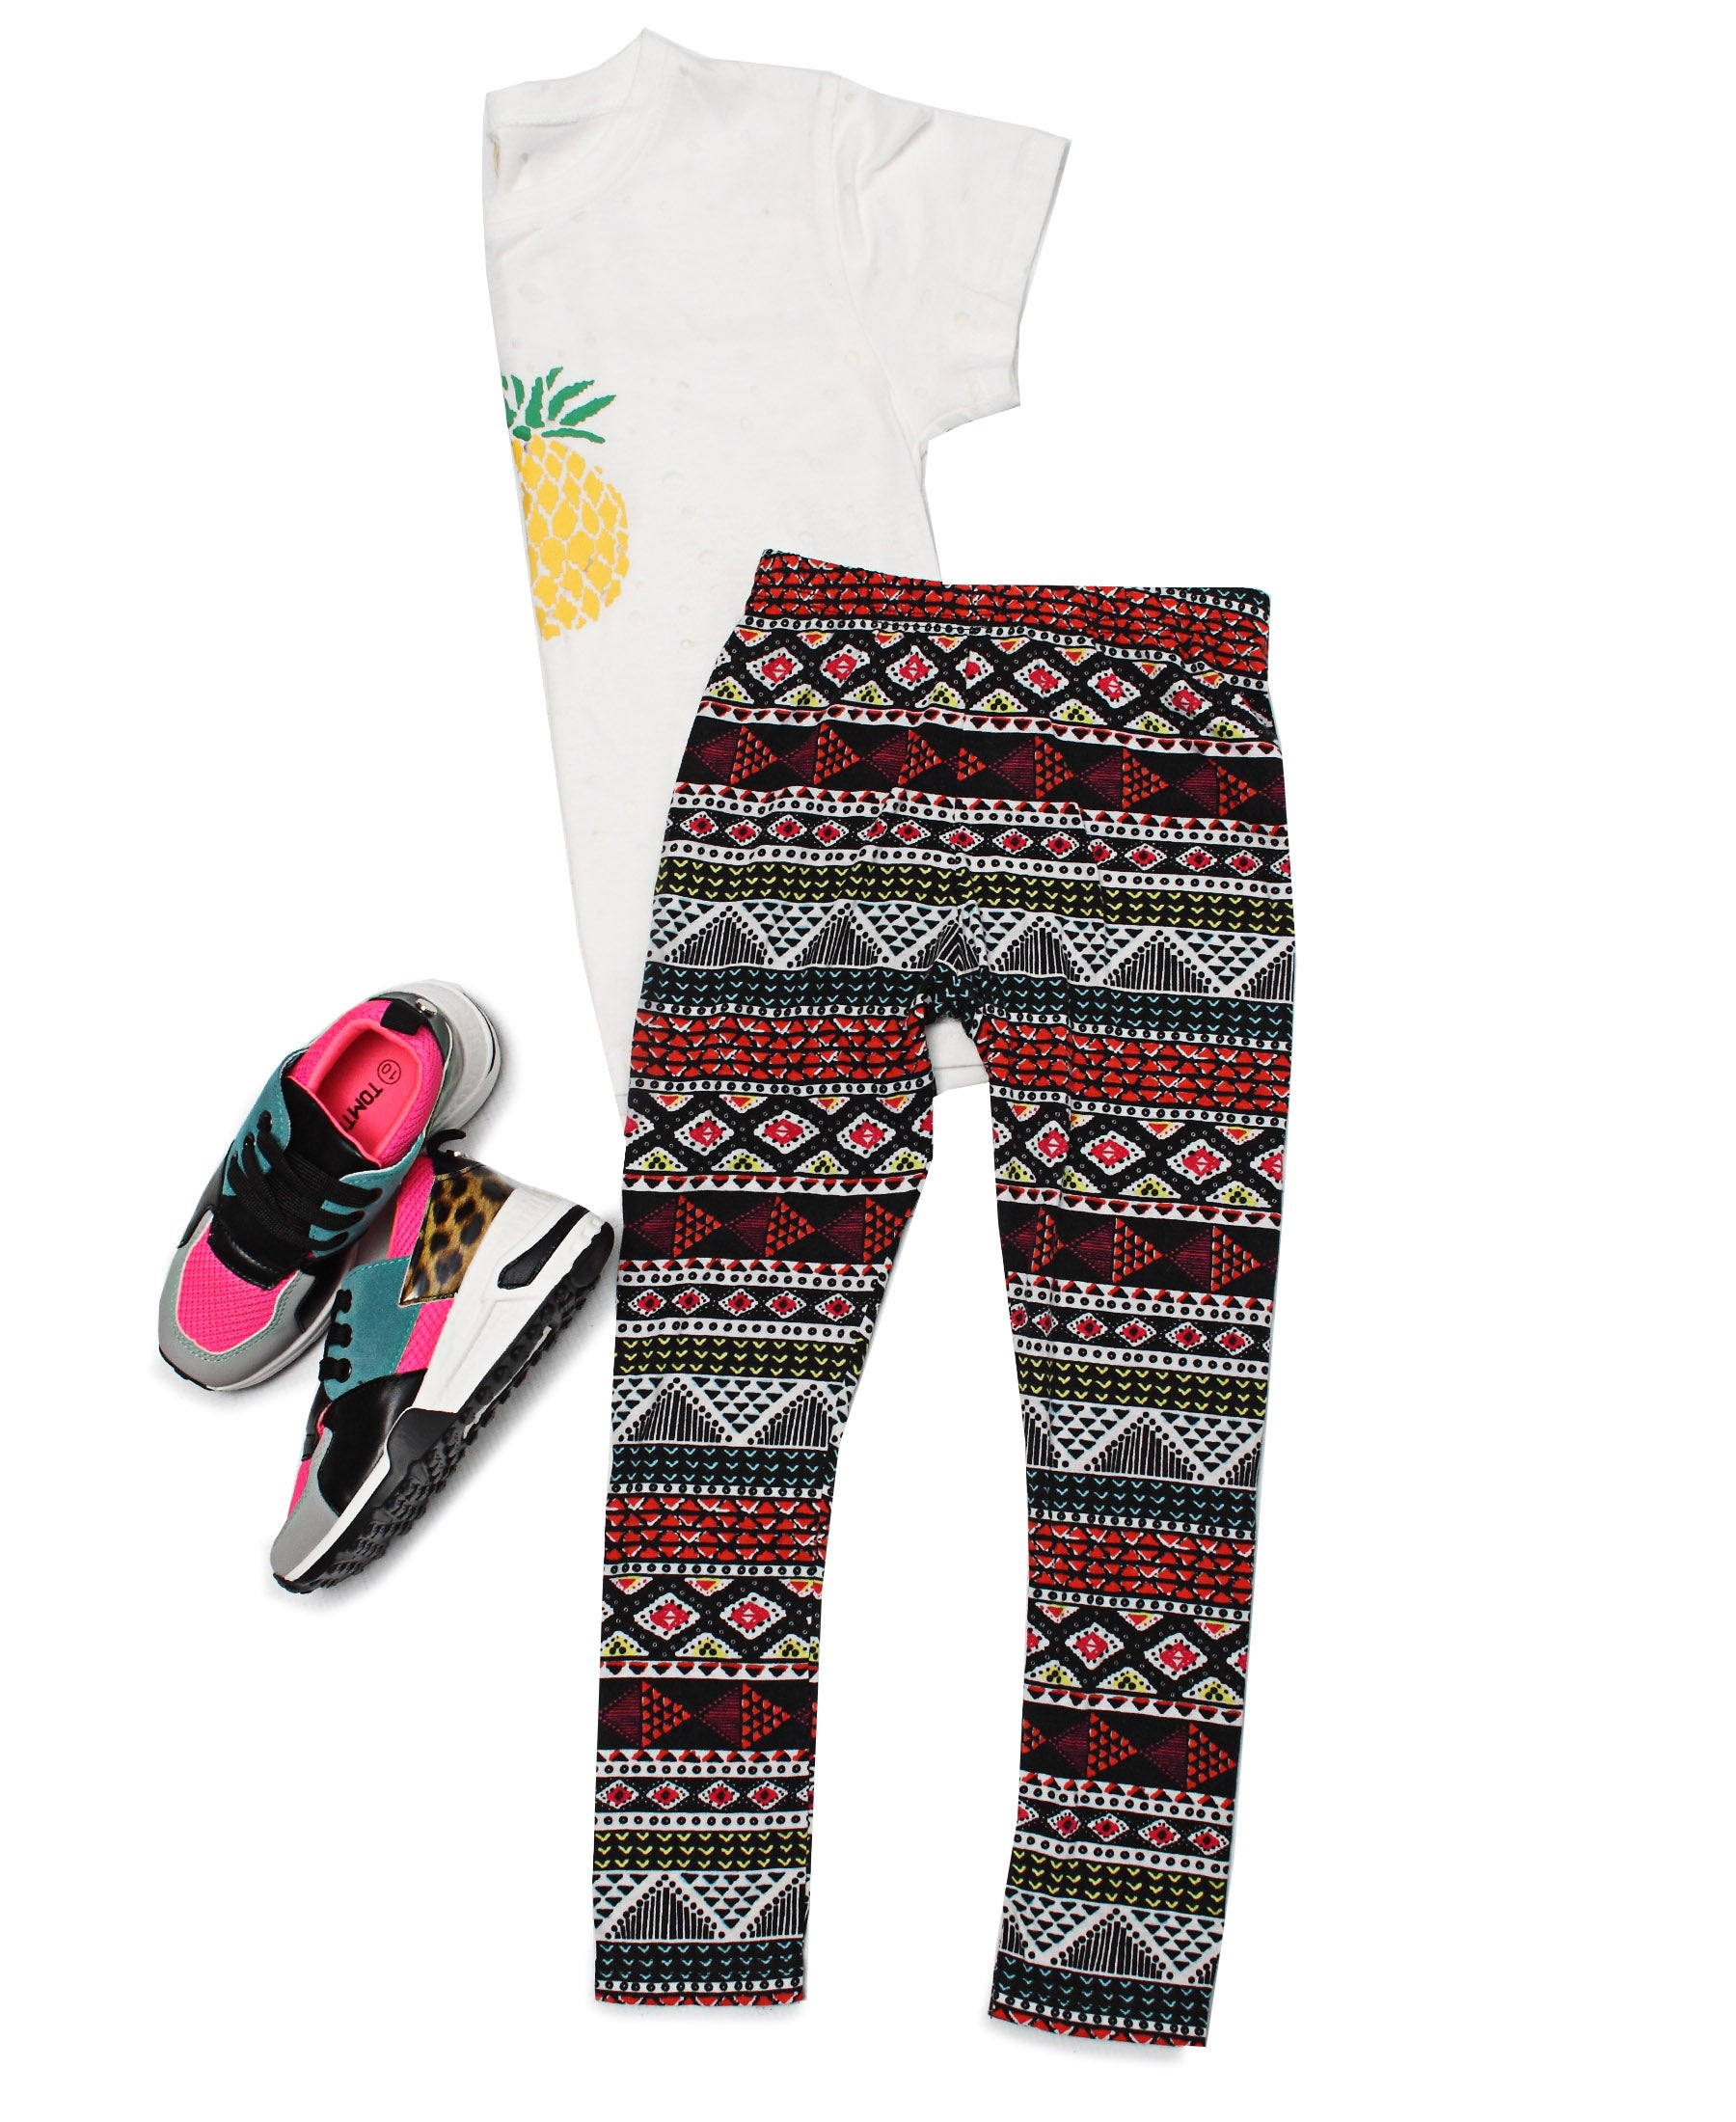 Kids Cotton Knit Leggings - Multi